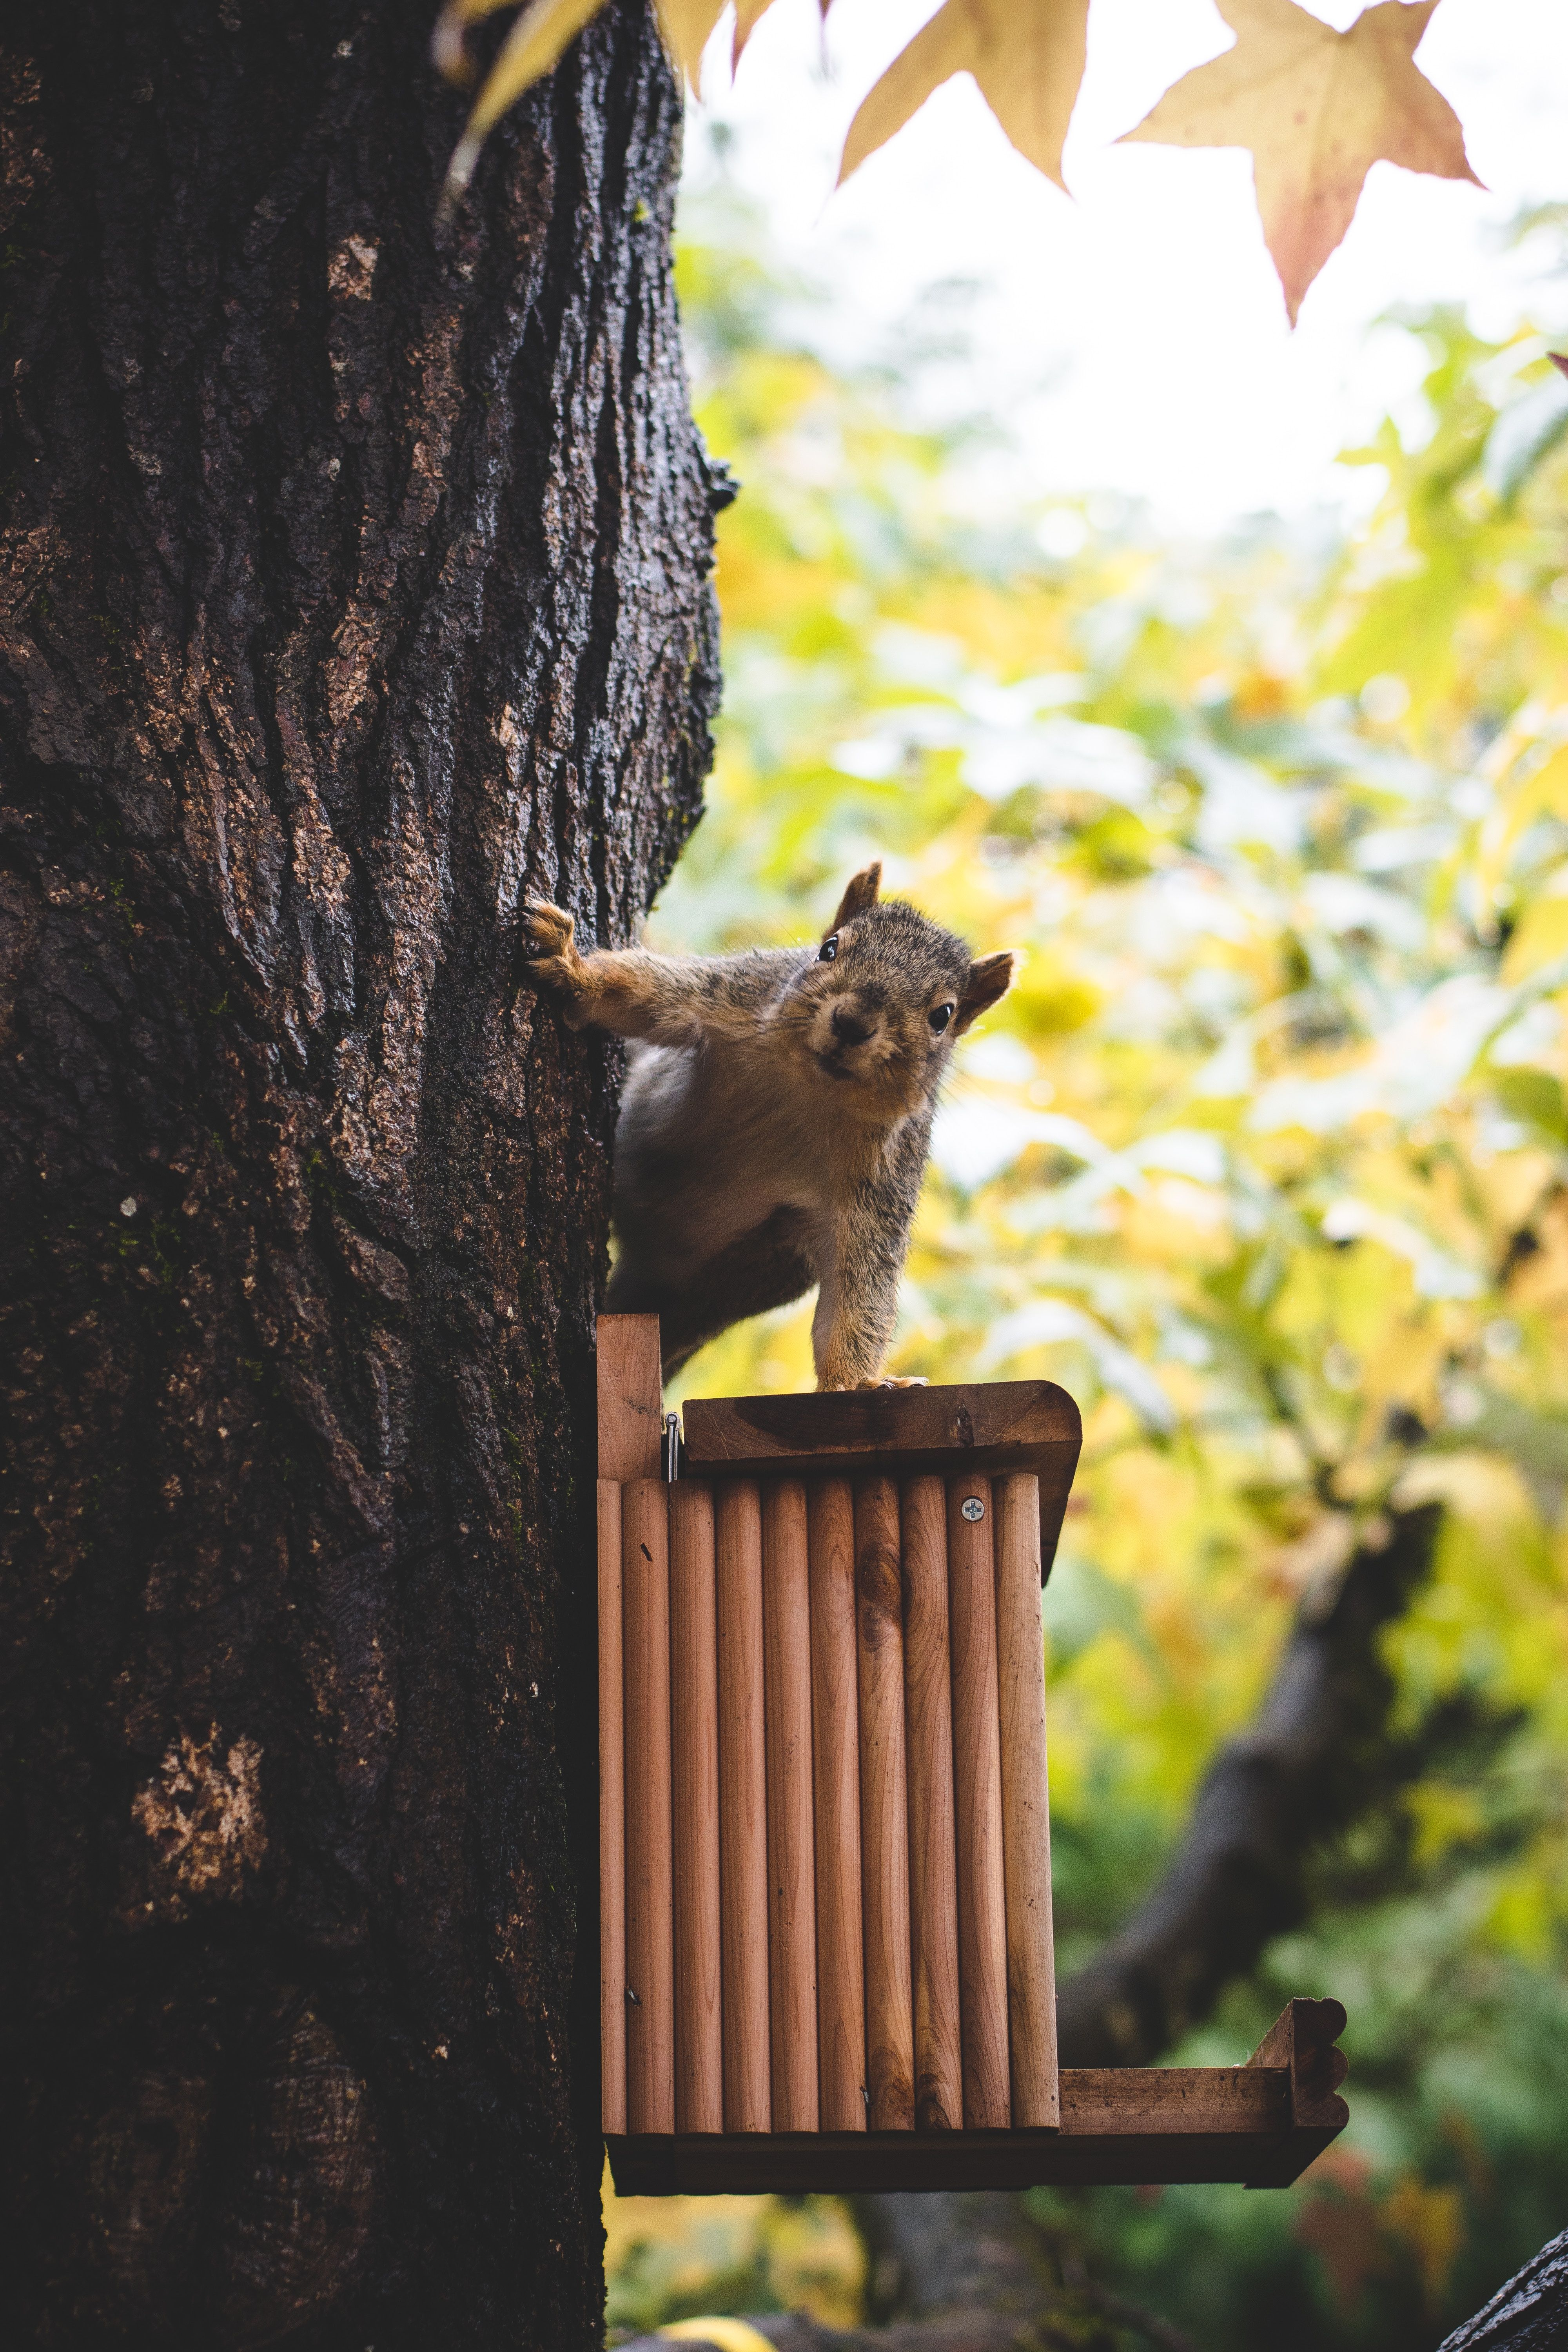 Can squirrels damage your home wild animals pictures